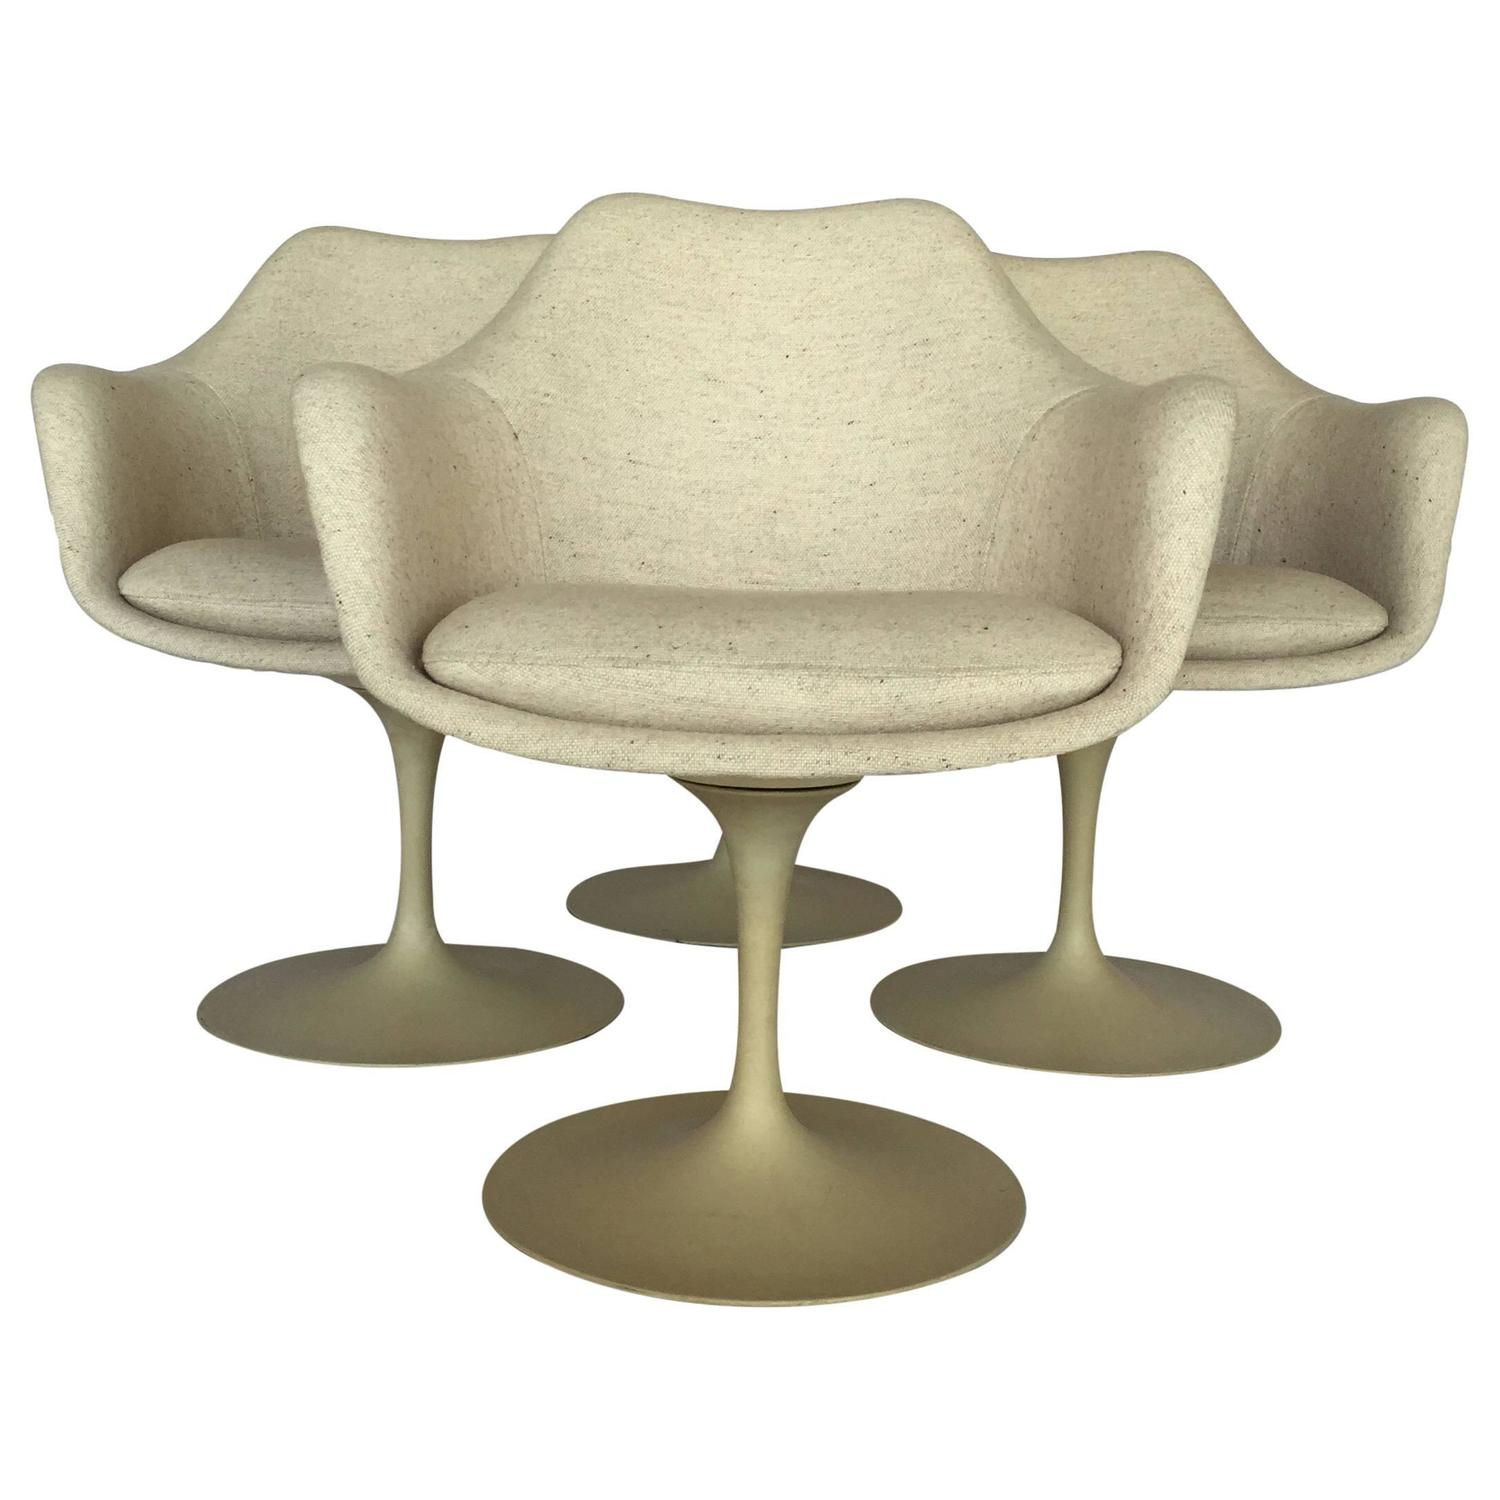 Seasonal deal tulip table and chair dining set by eero saarinen for knoll for sale at 1stdibs - Tulip chairs for sale ...